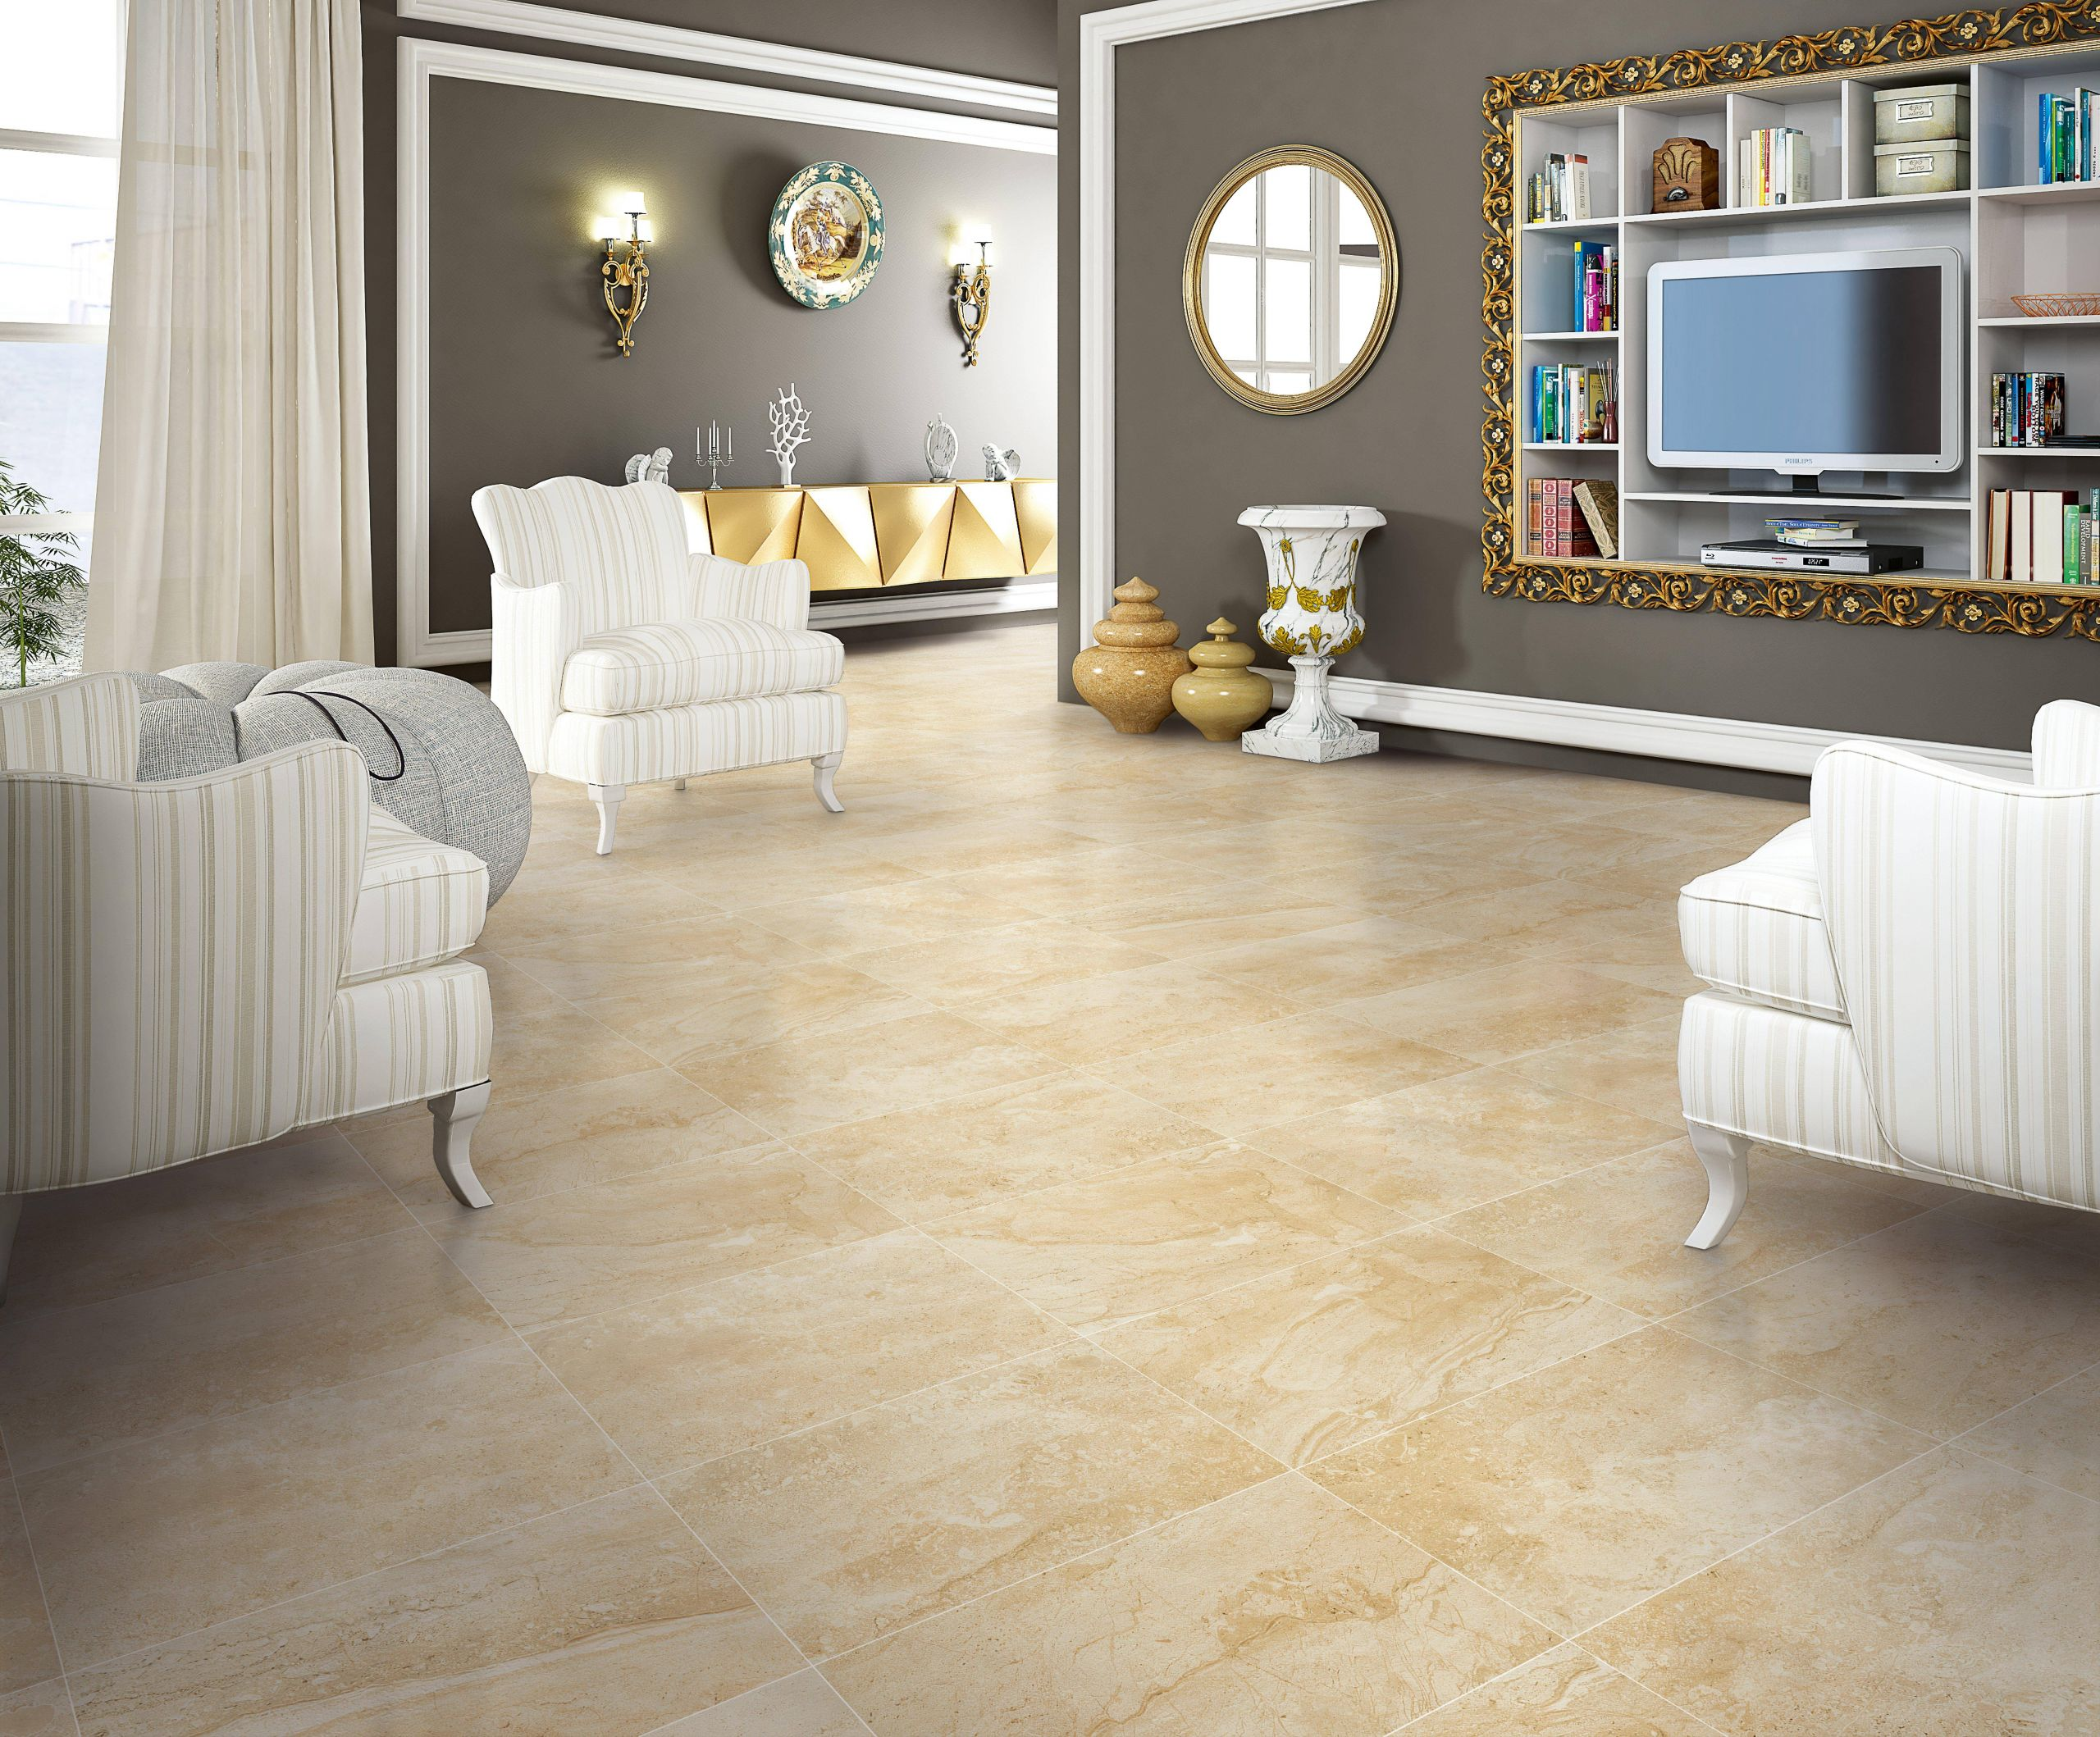 daino reale porcelain tile living room